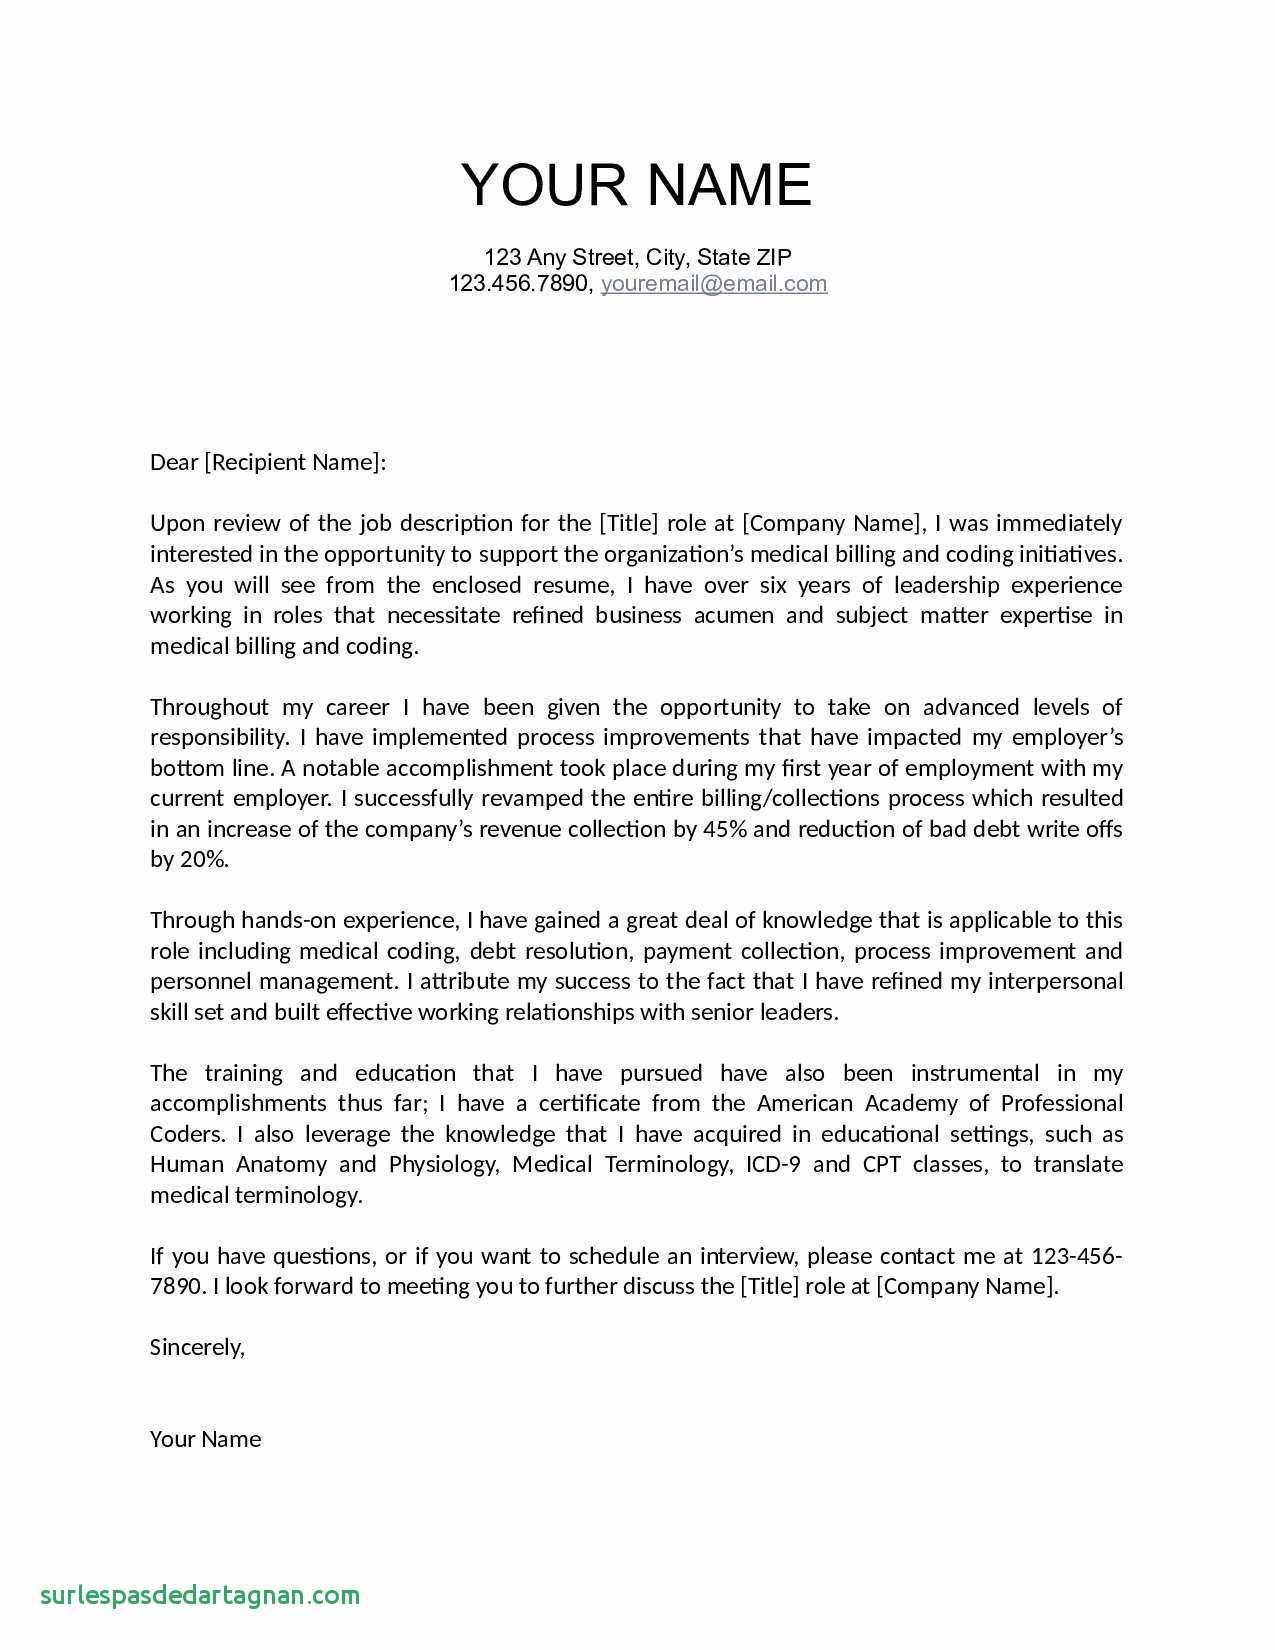 Business collaboration letter template examples letter templates business collaboration letter template business partnership letter template inspirationa fresh job fer thecheapjerseys Gallery